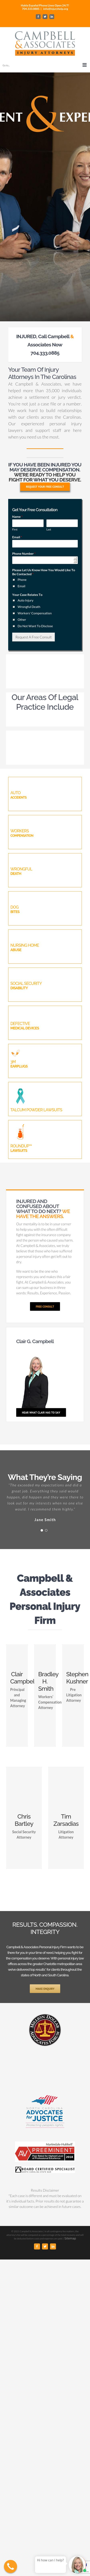 Campbell & Associates - Charlotte NC Lawyers